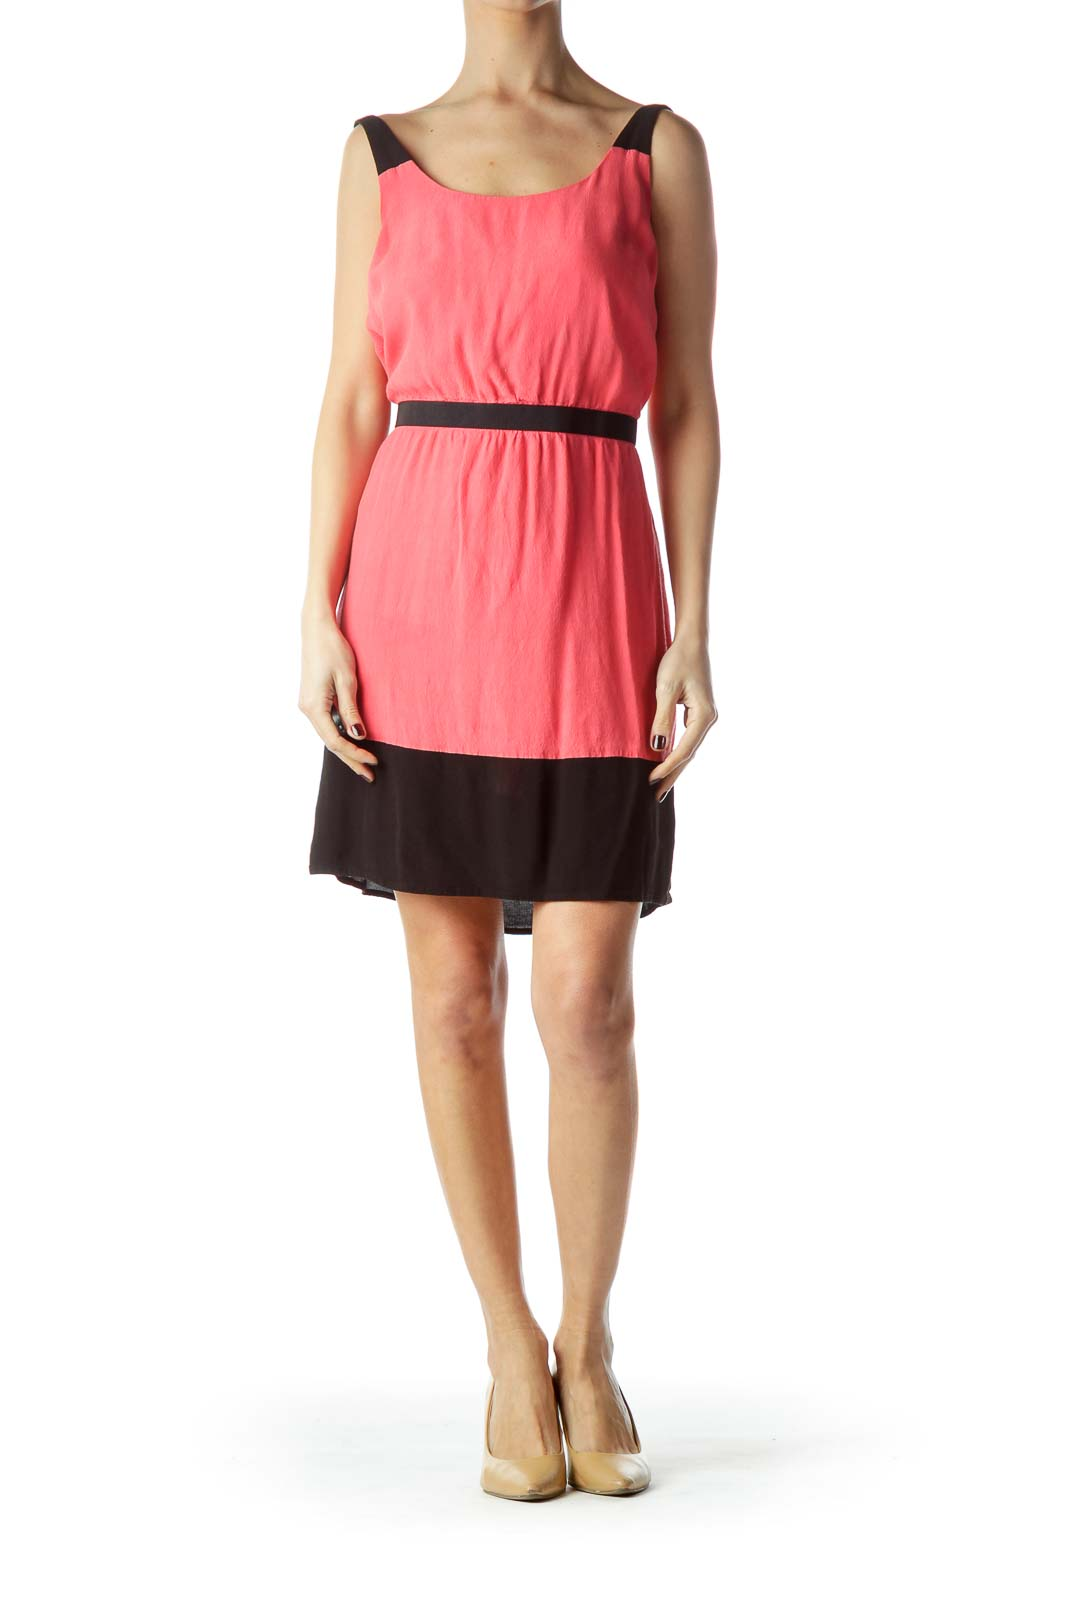 Coral Pink and Black Day Dress